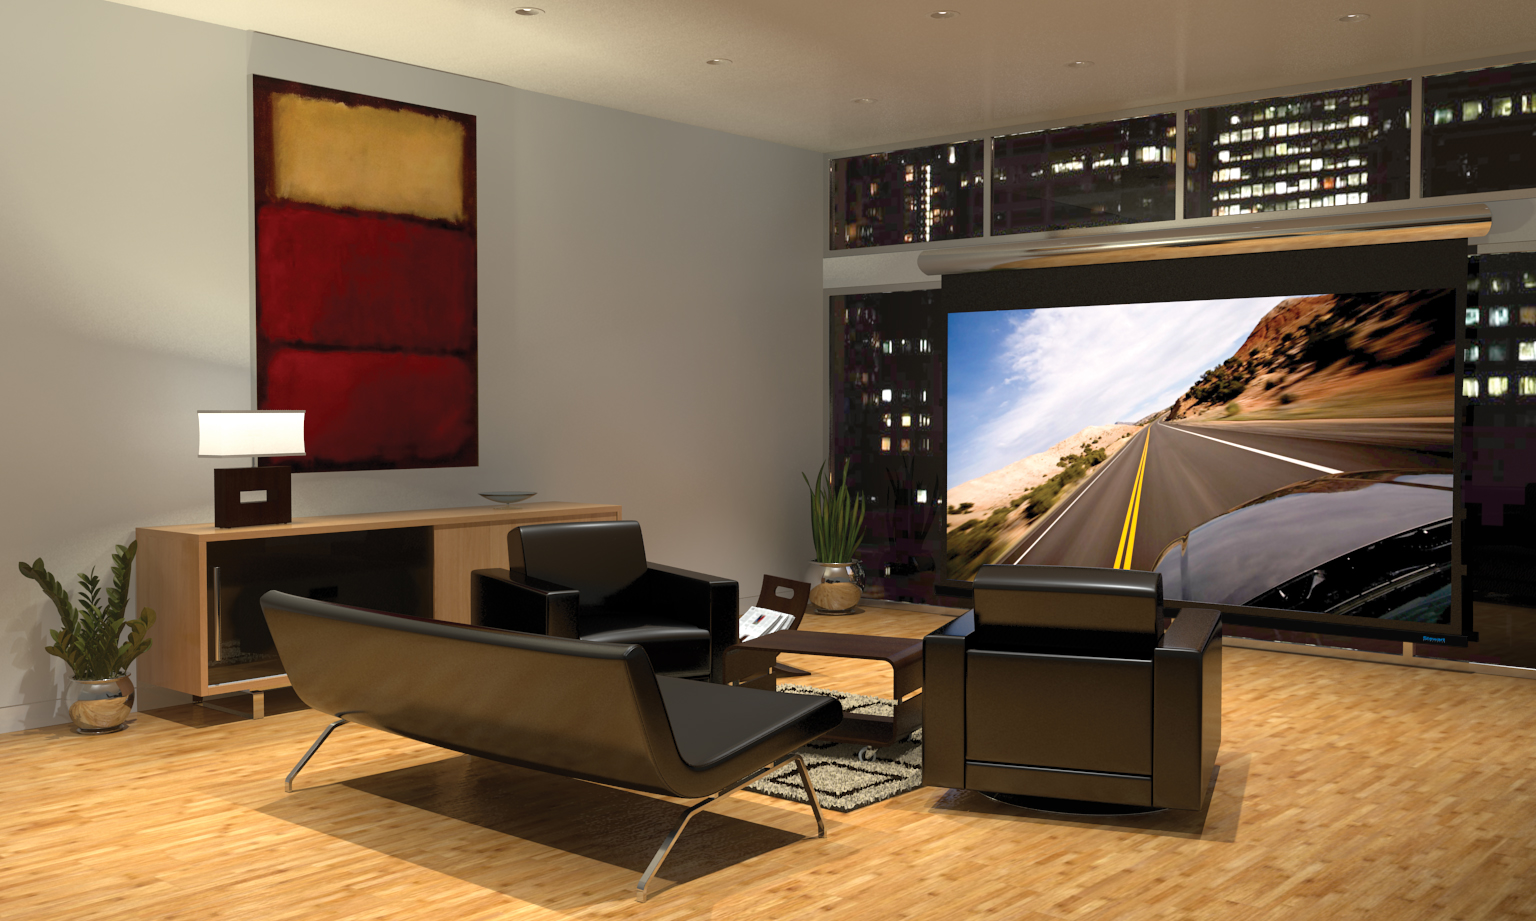 studiomorado cuarto de entretenimiento entertainment room. Black Bedroom Furniture Sets. Home Design Ideas